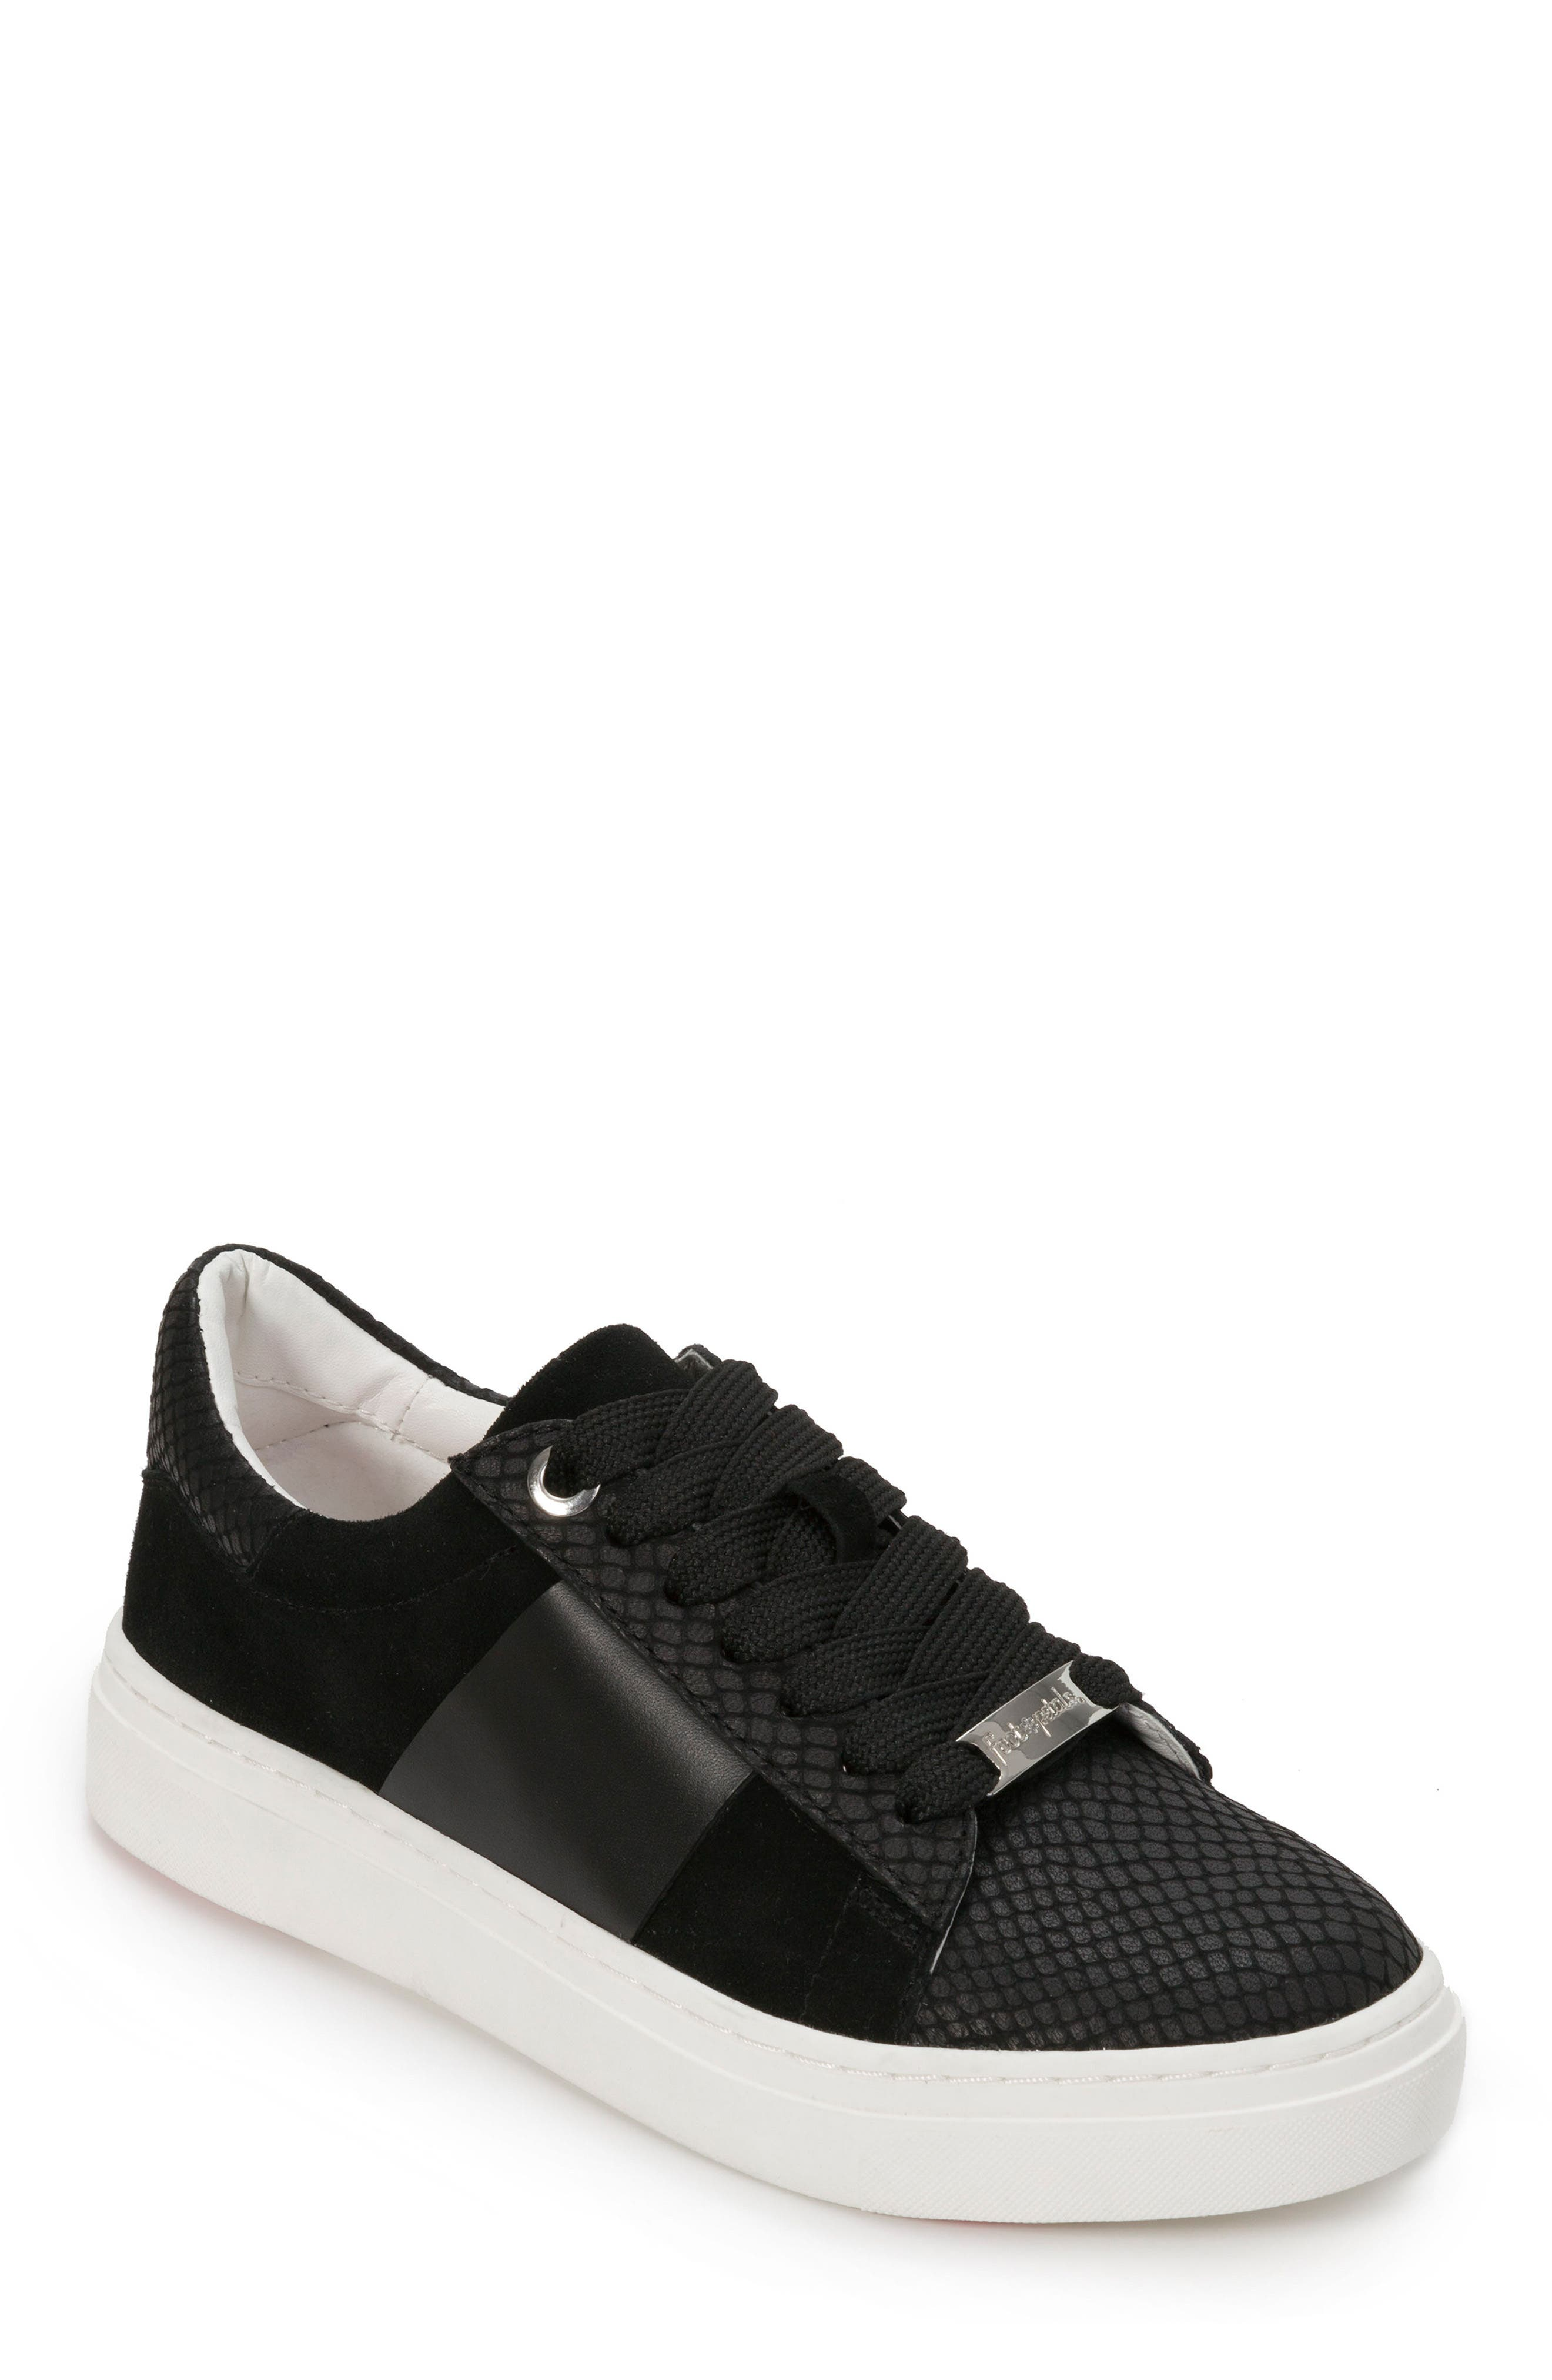 Fallon Sneaker,                             Main thumbnail 1, color,                             BLACK SUEDE